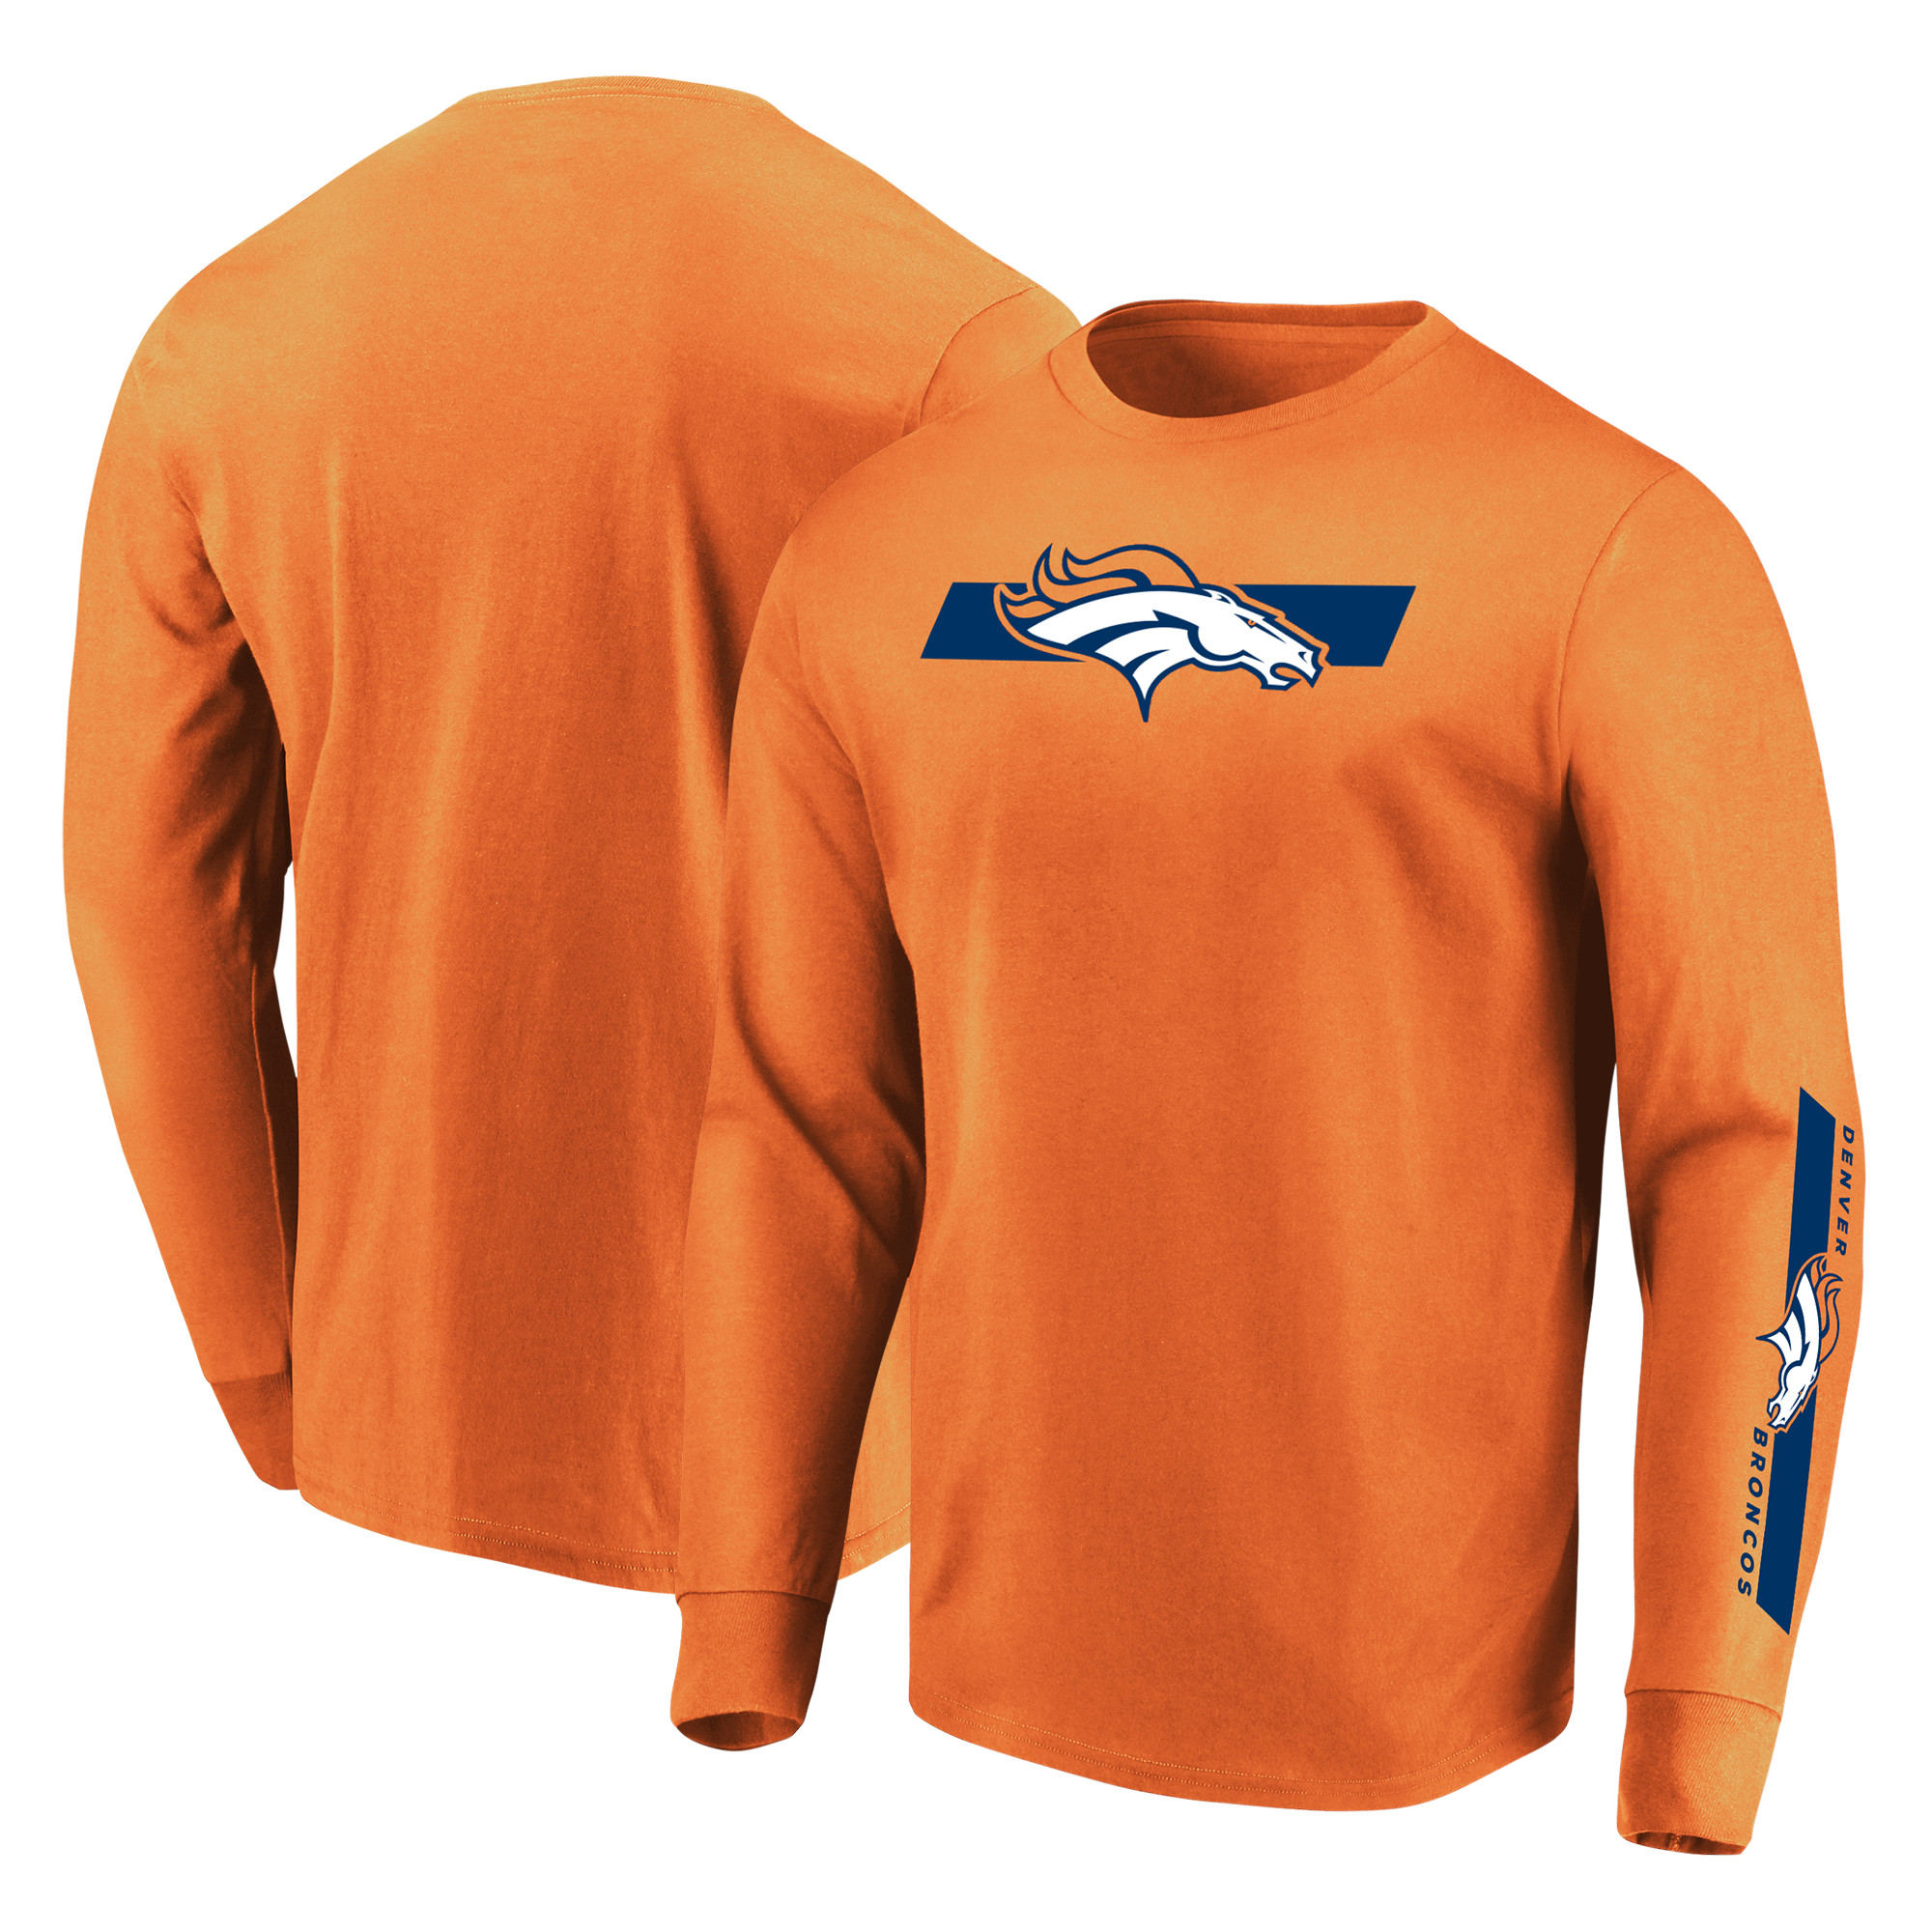 Denver Broncos Majestic Dual Threat Long Sleeve T-Shirt - Orange